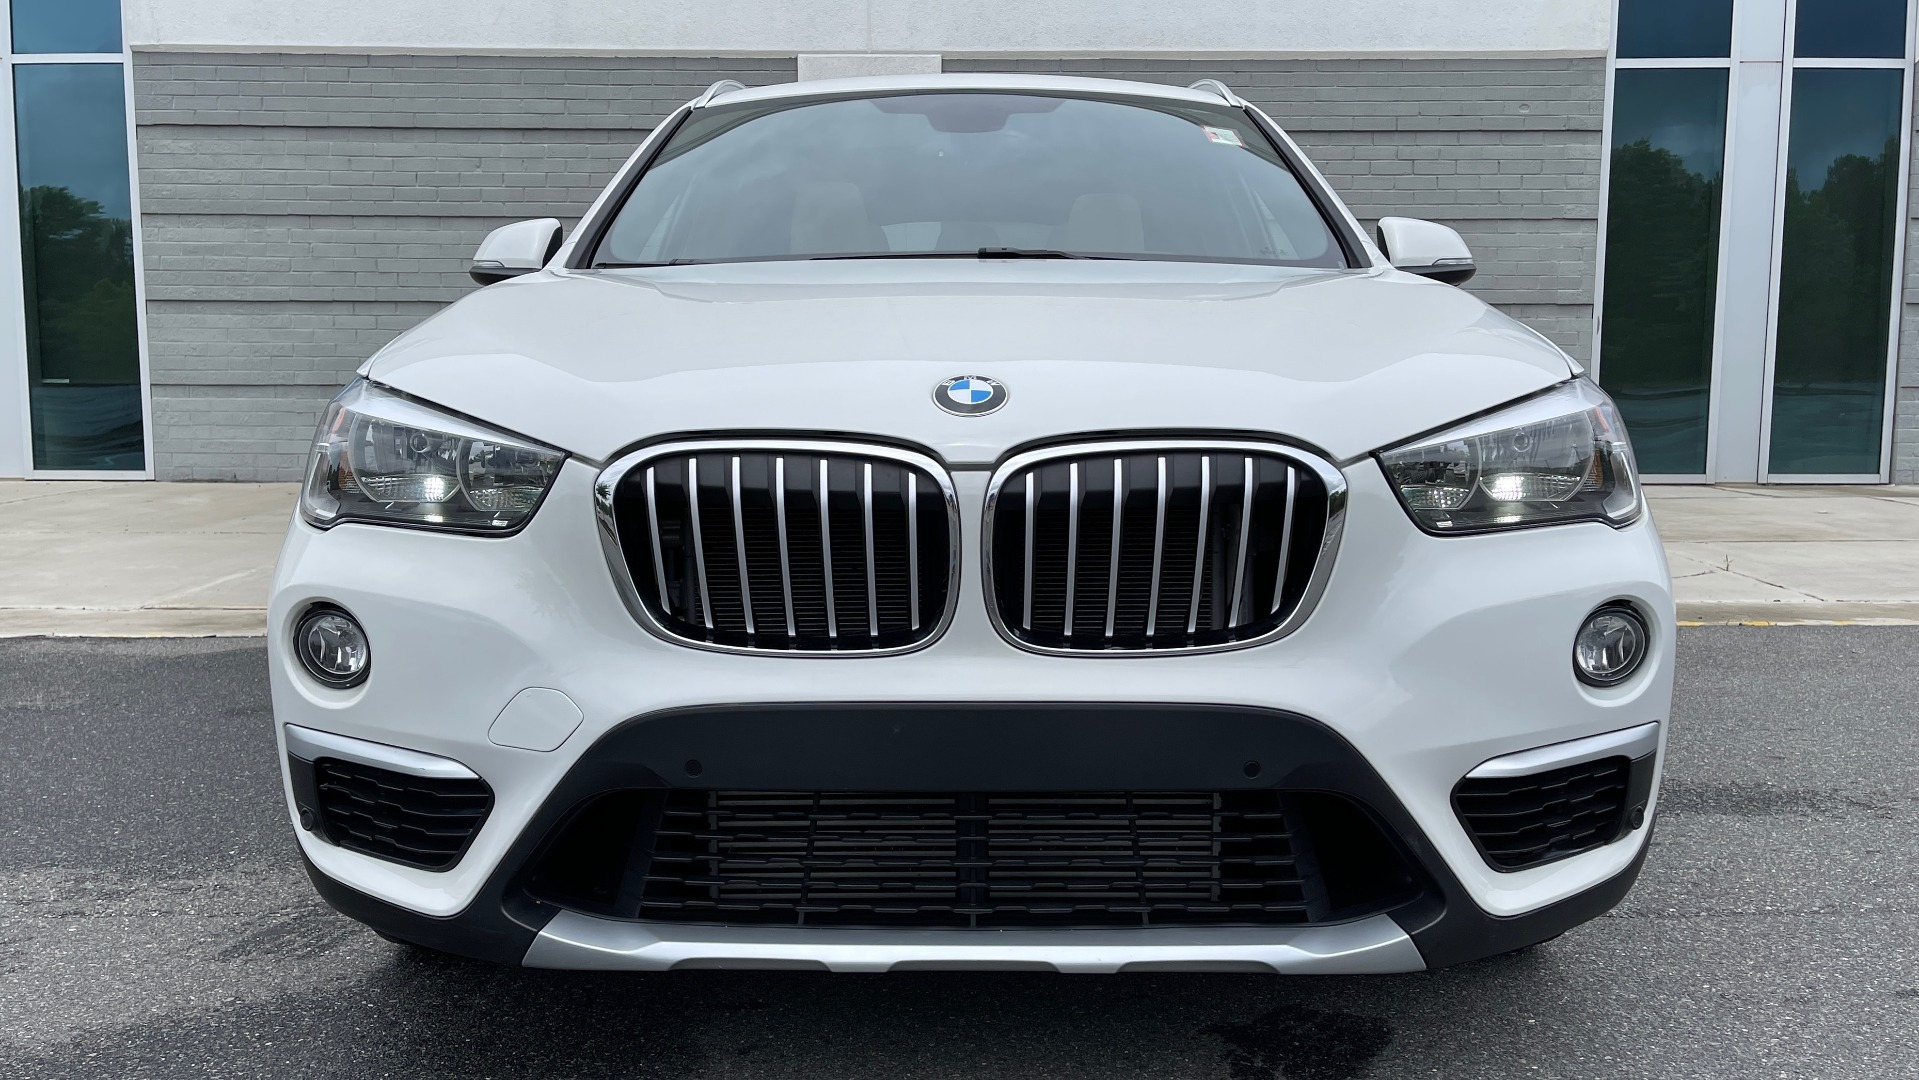 Used 2018 BMW X1 XDRIVE28I / CONV PKG / PANO-ROOF / HTD STS / PARK ASST / REARVIEW for sale $30,995 at Formula Imports in Charlotte NC 28227 12